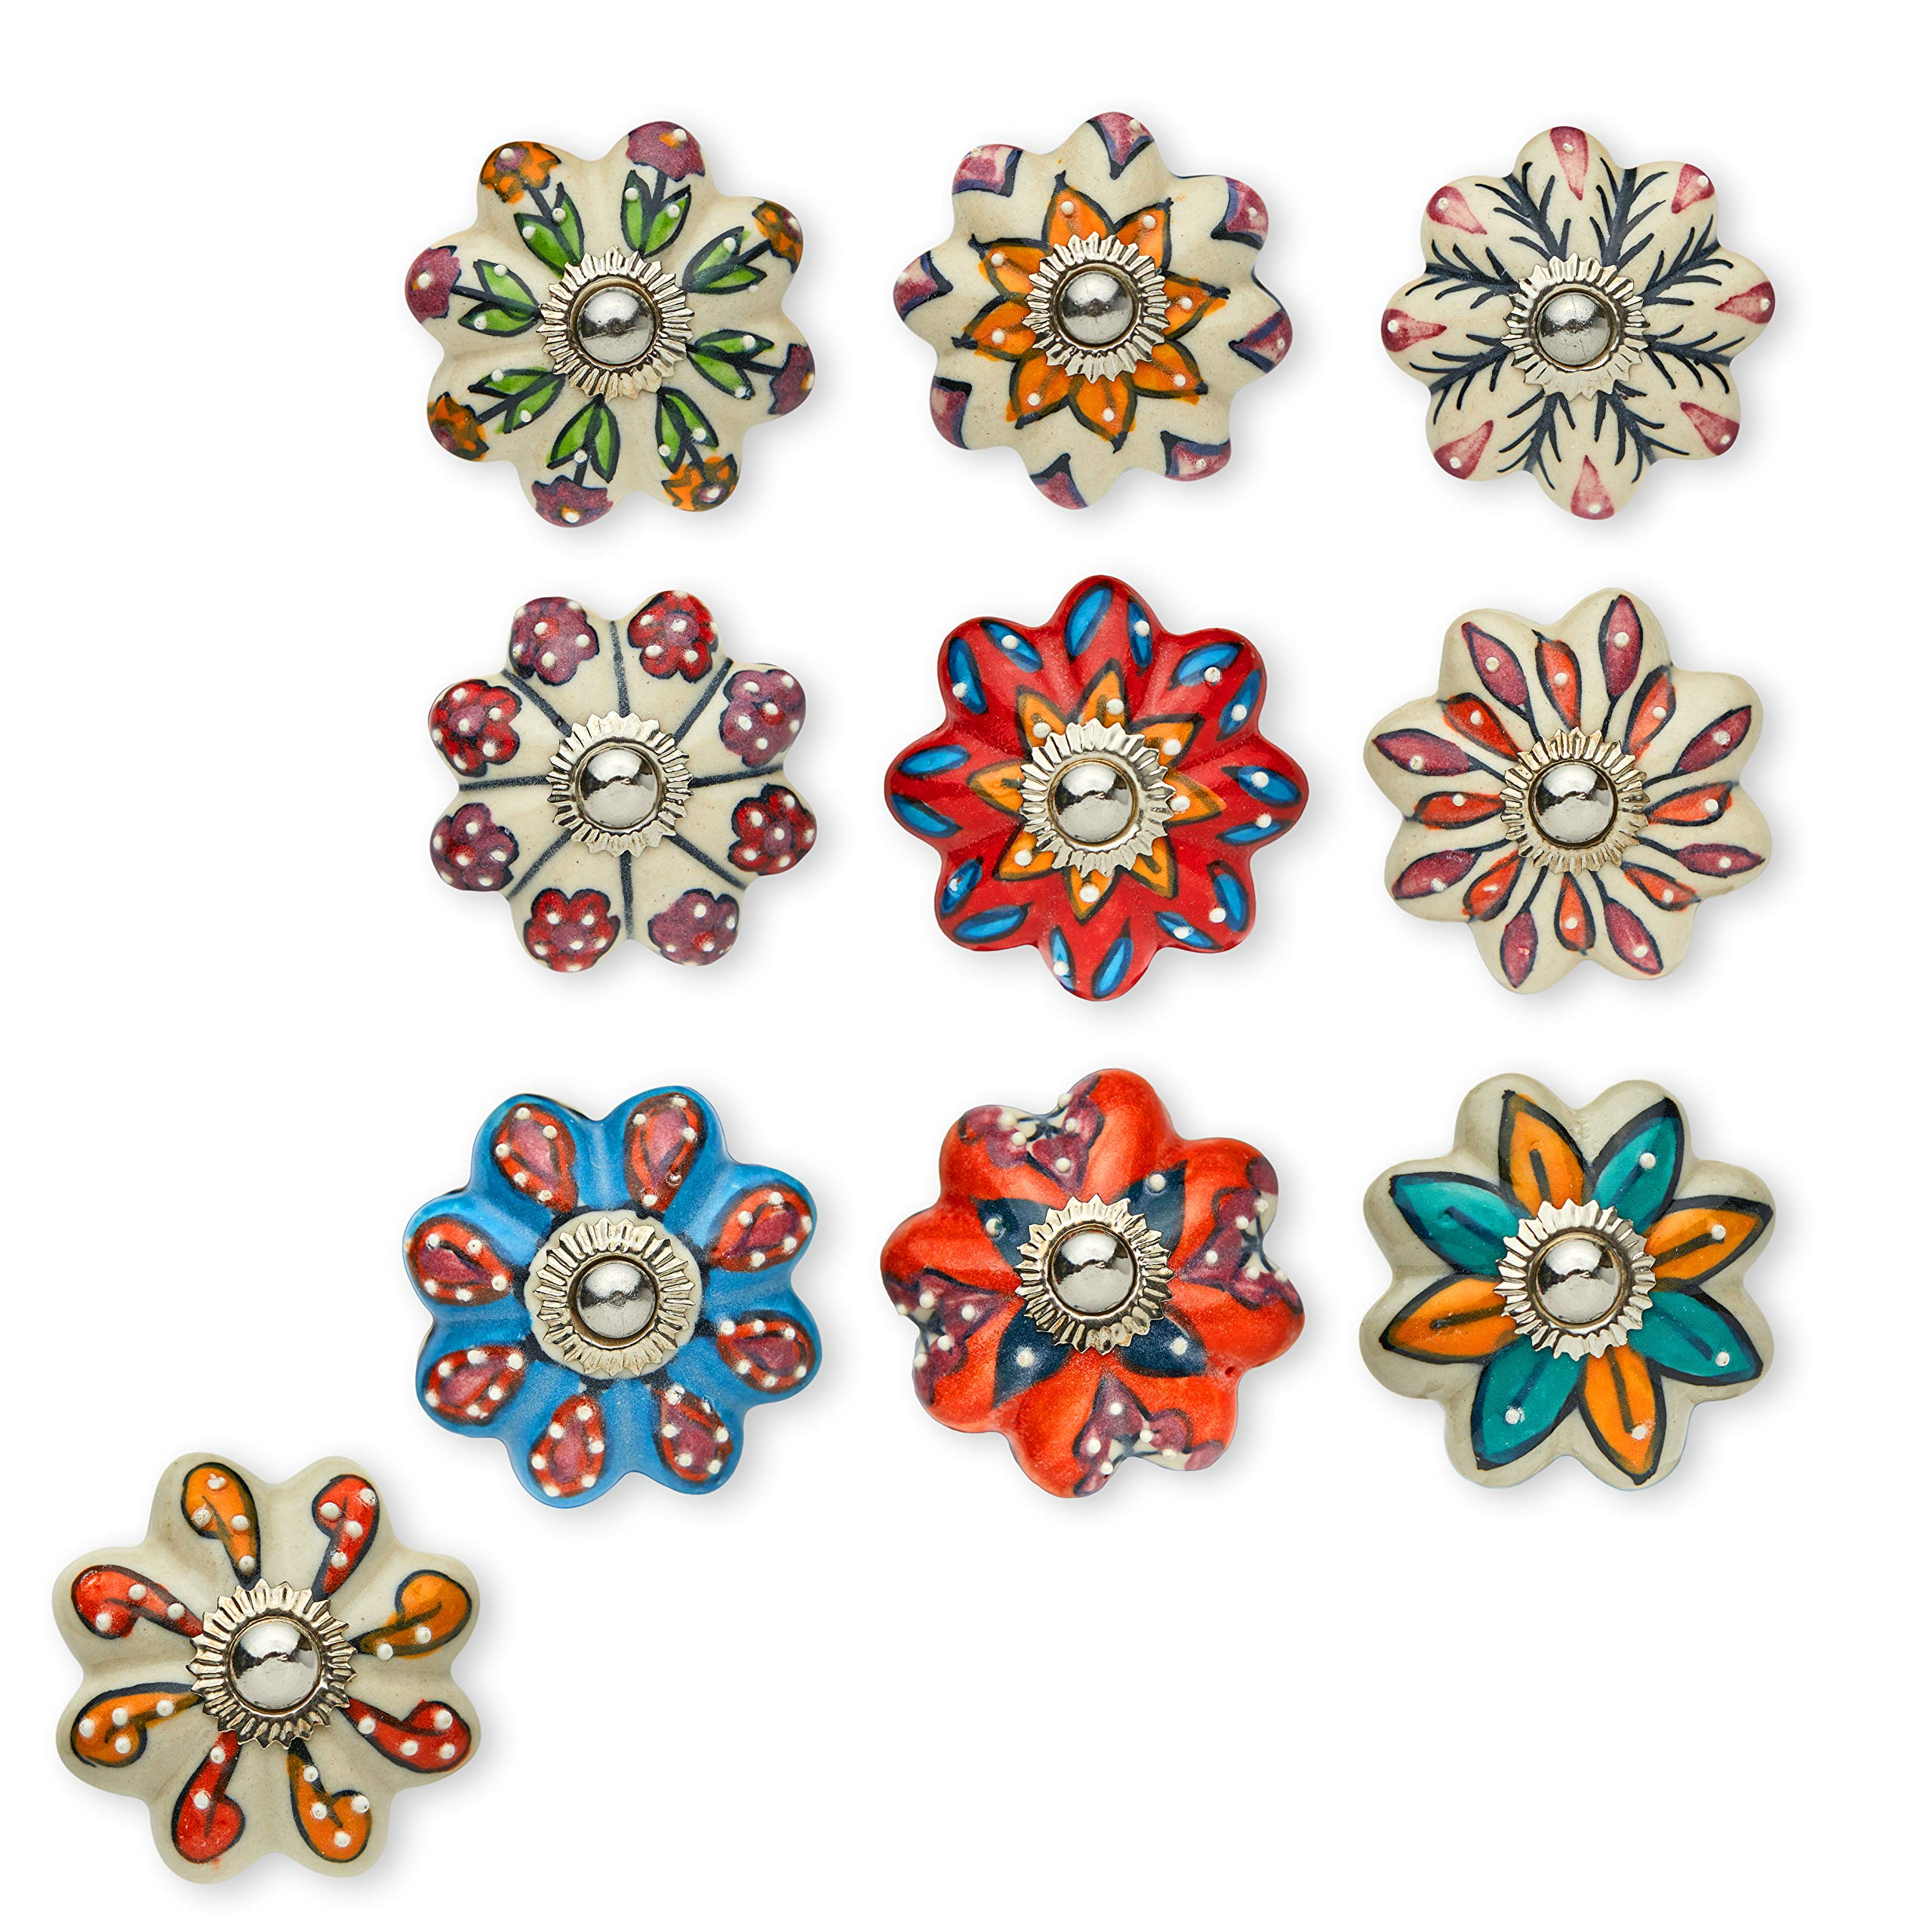 Set of 10 Handmade Flower Knobs   Colorful Multi Design Ceramic Cabinet Knobs   Drawer Pulls Ideal for Any Home, Kitchen or Office   These Drawer Knobs Comes with 1 Wrench, Screw Cap & Bolts